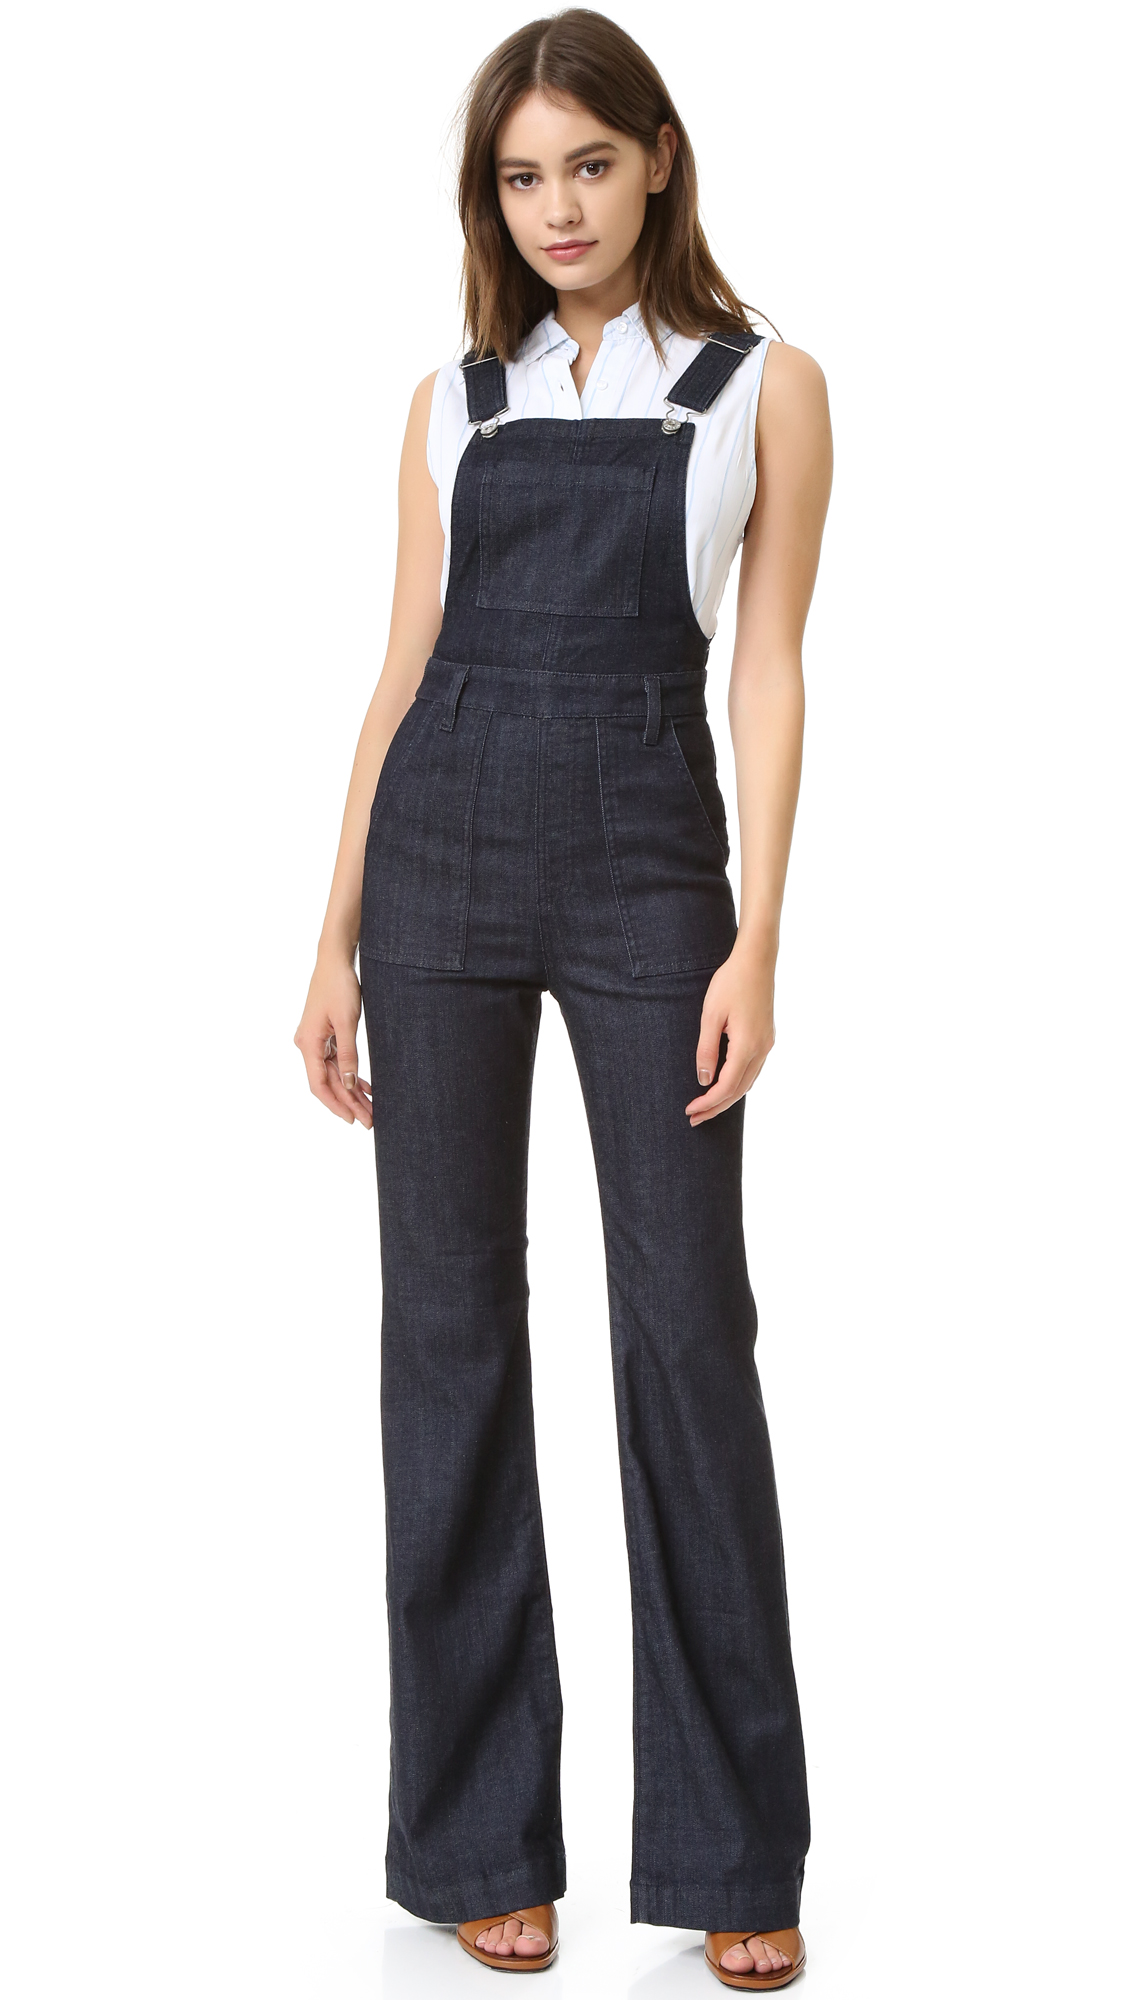 Flared AG overalls in a dark wash with 5 patch pockets. Exposed side zippers. Adjustable buckle shoulder straps. Fabric: Lightweight denim. 70% cotton/28% lyocell/2% polyurethane. Wash cold. Imported, Mexico. Measurements Inseam: 34.75in / 88cm Leg opening: 22in / 56cm Measurements